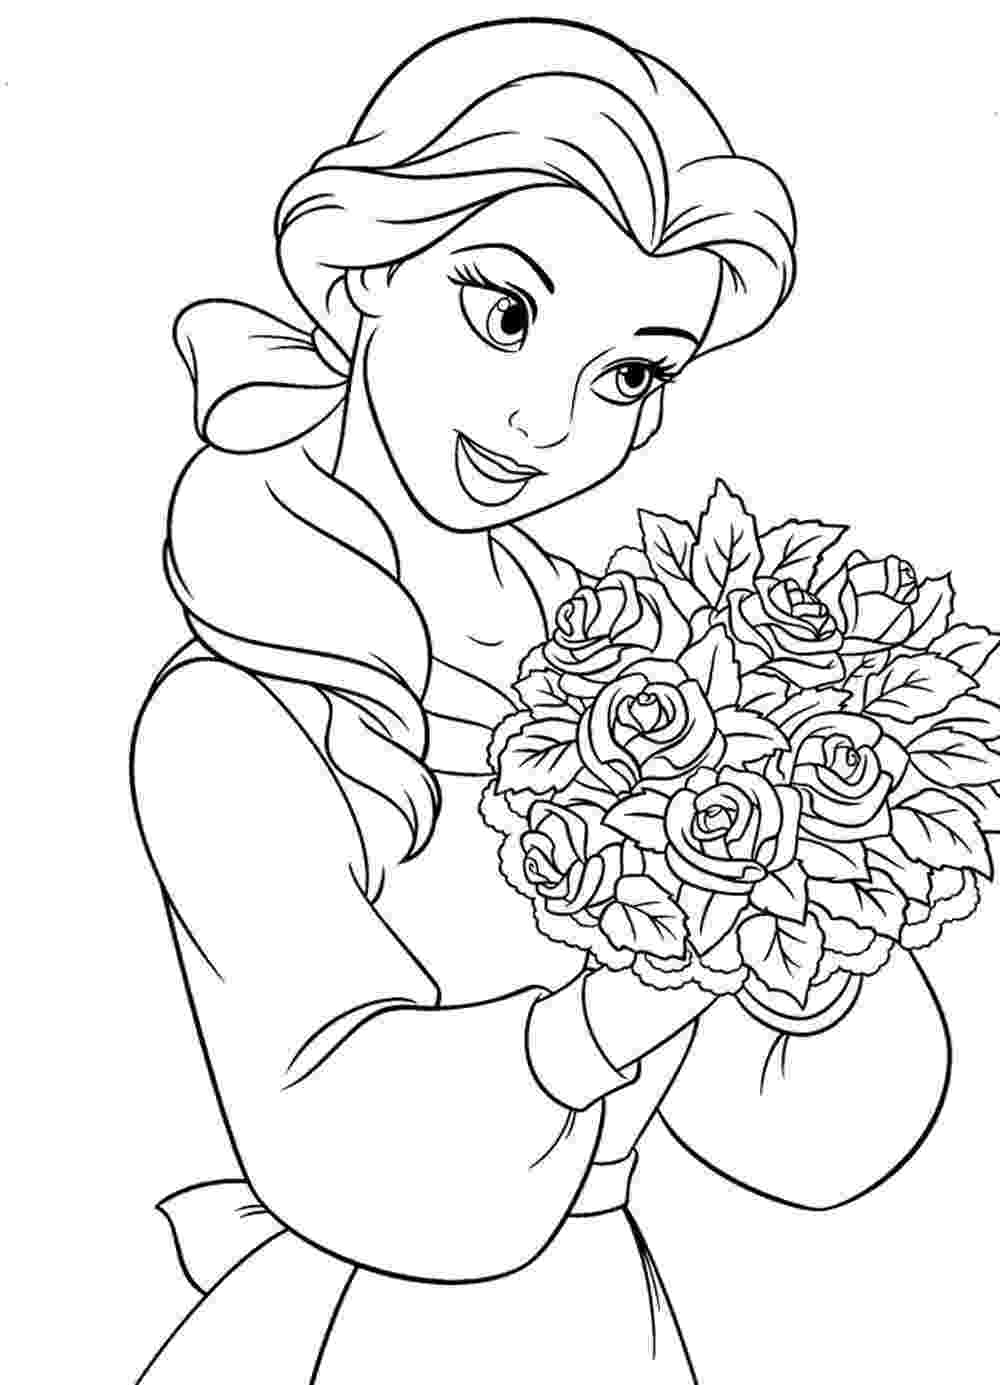 girl colouring pages coloring pages for girls dr odd girl pages colouring